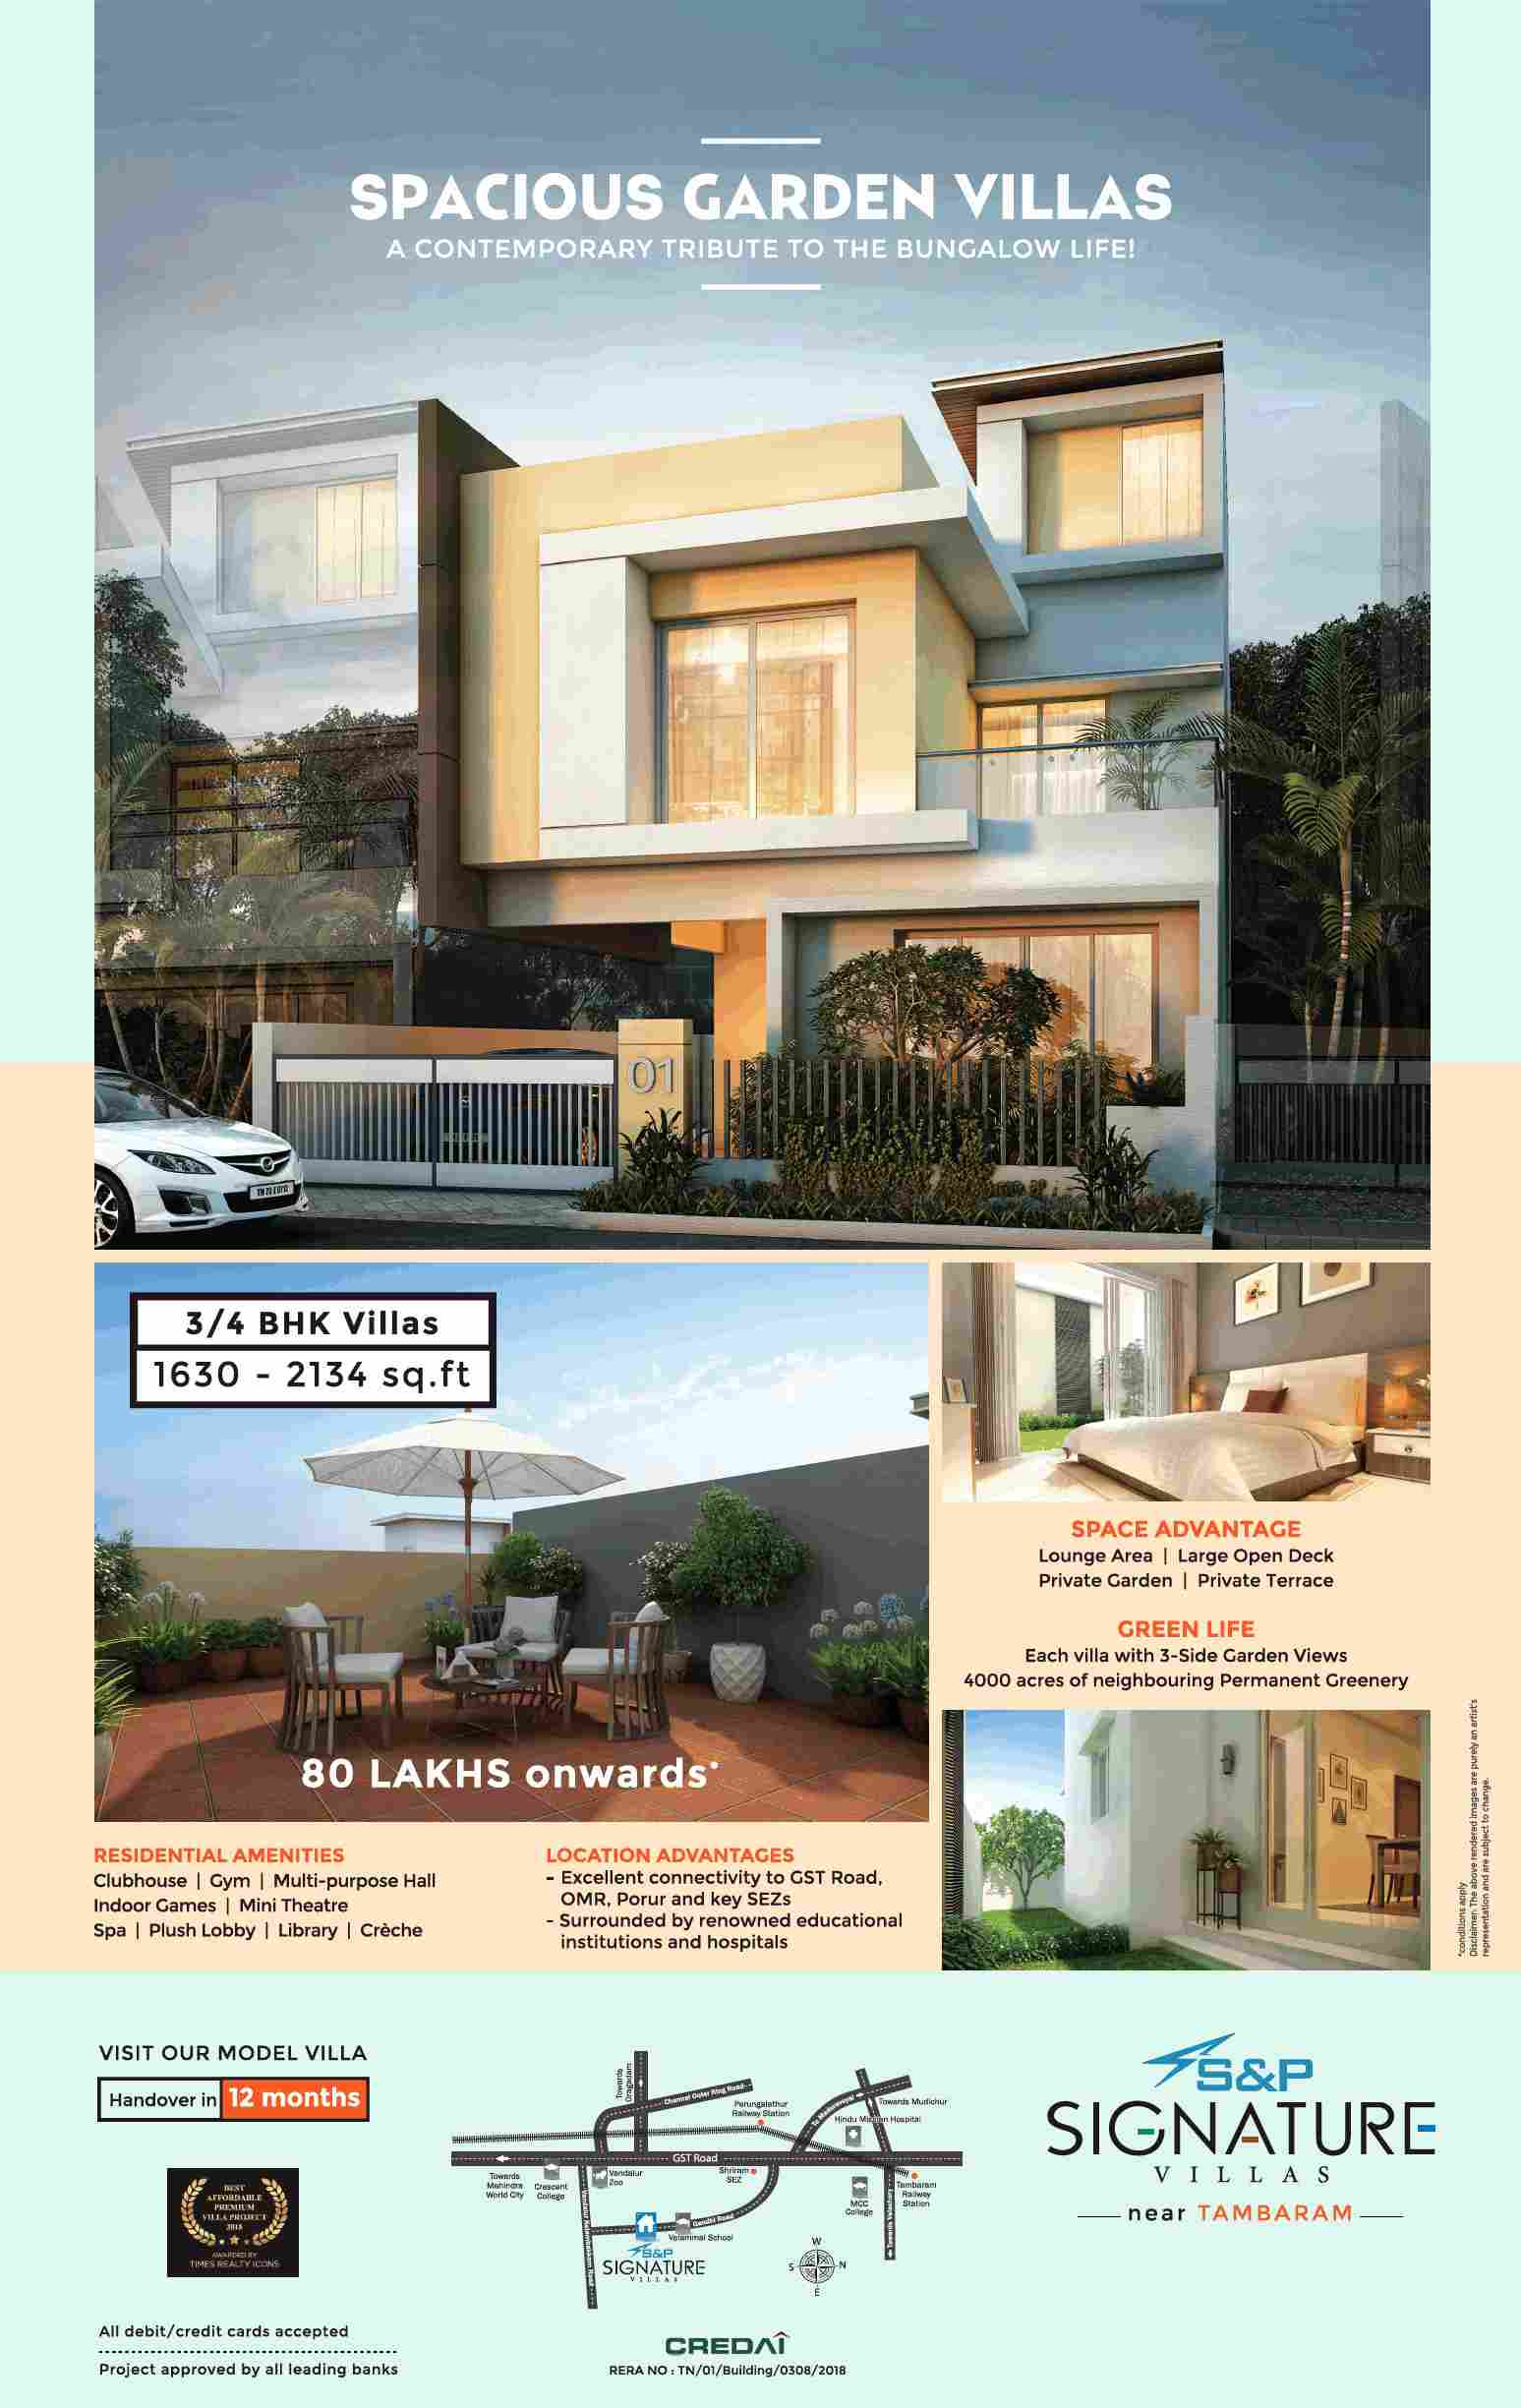 Model villas ready for visit at S P Signature Villas in Chennai